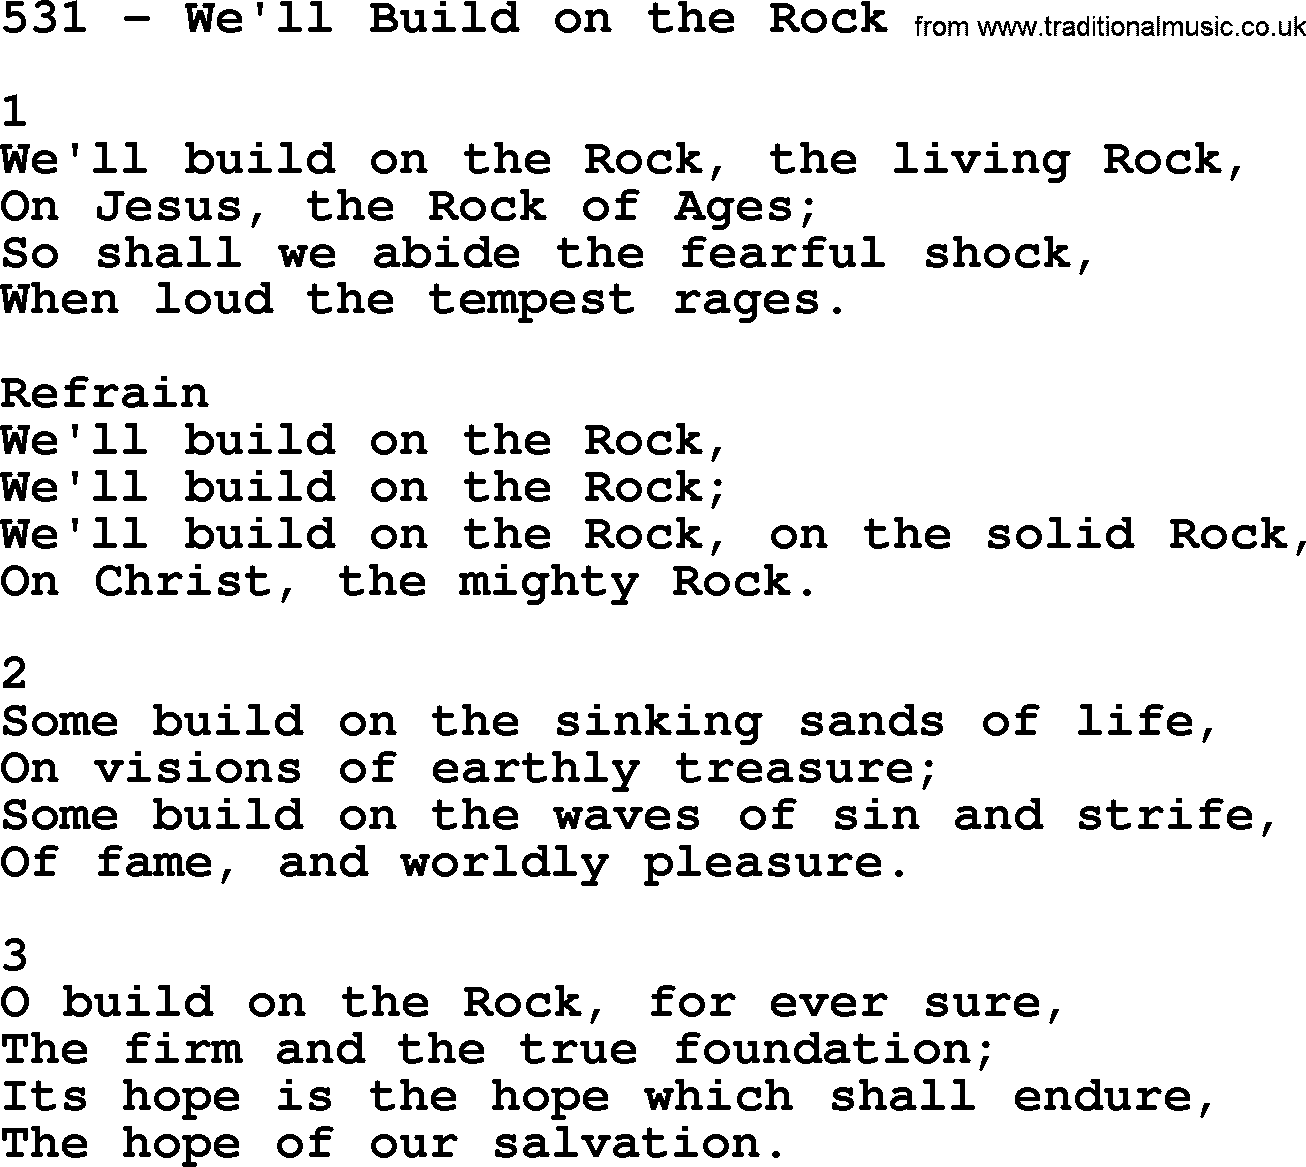 Adventist Hymnal, Song: 531-We'll Build On The Rock, with Lyrics